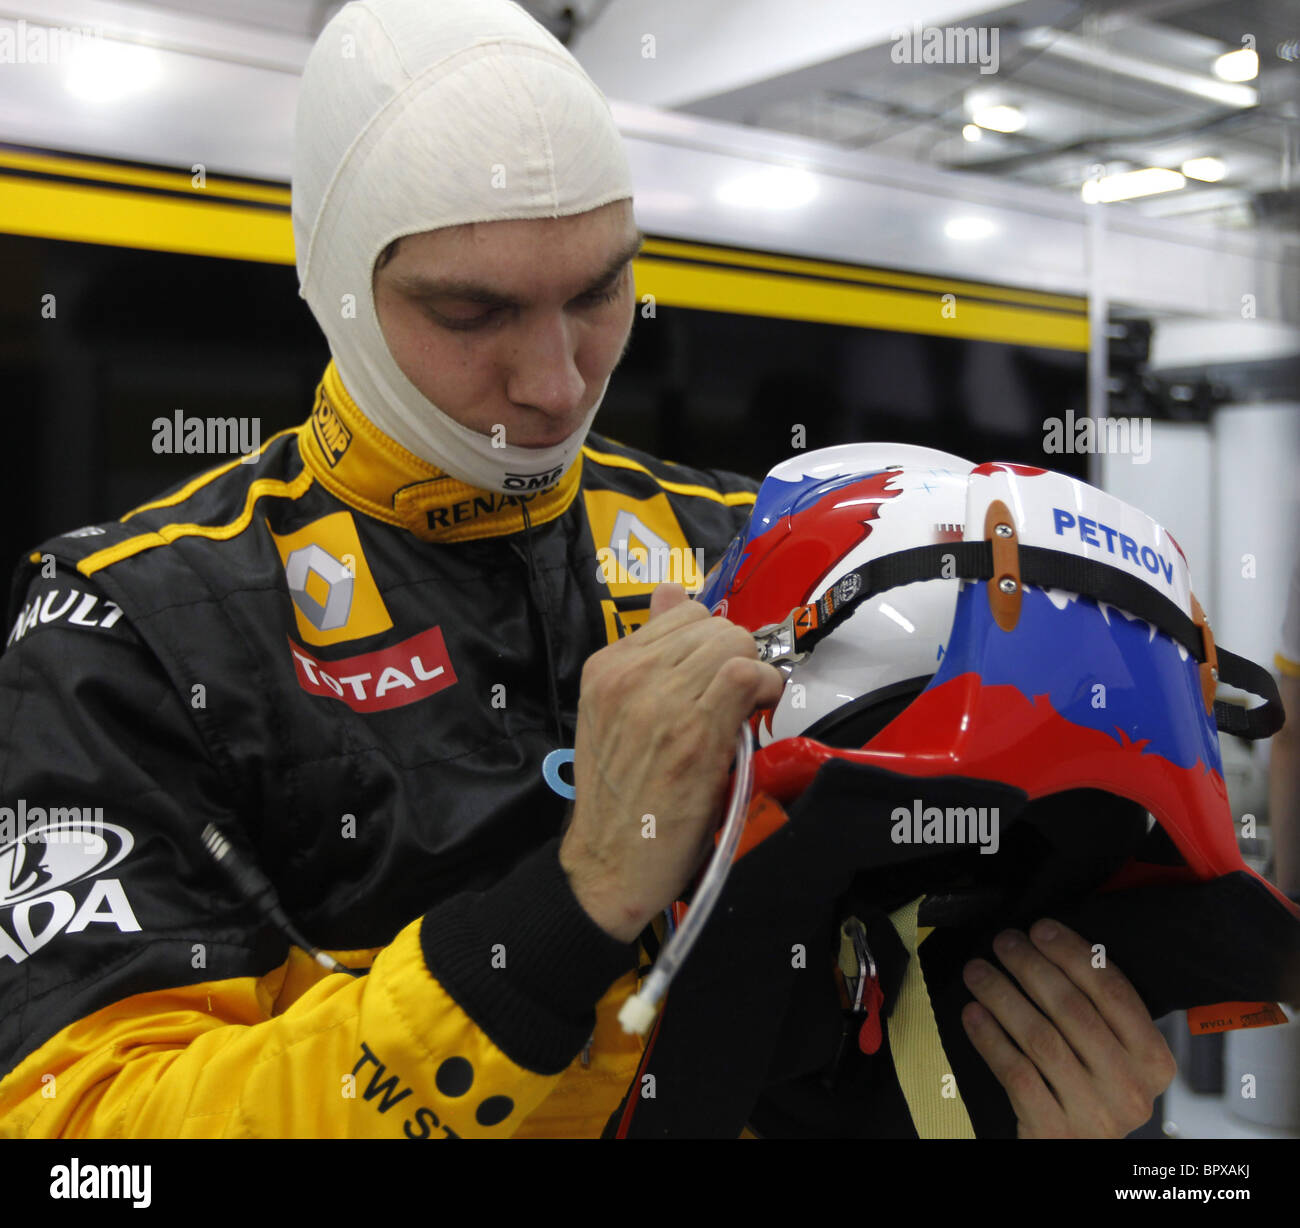 F1 Helmet High Resolution Stock Photography And Images Alamy